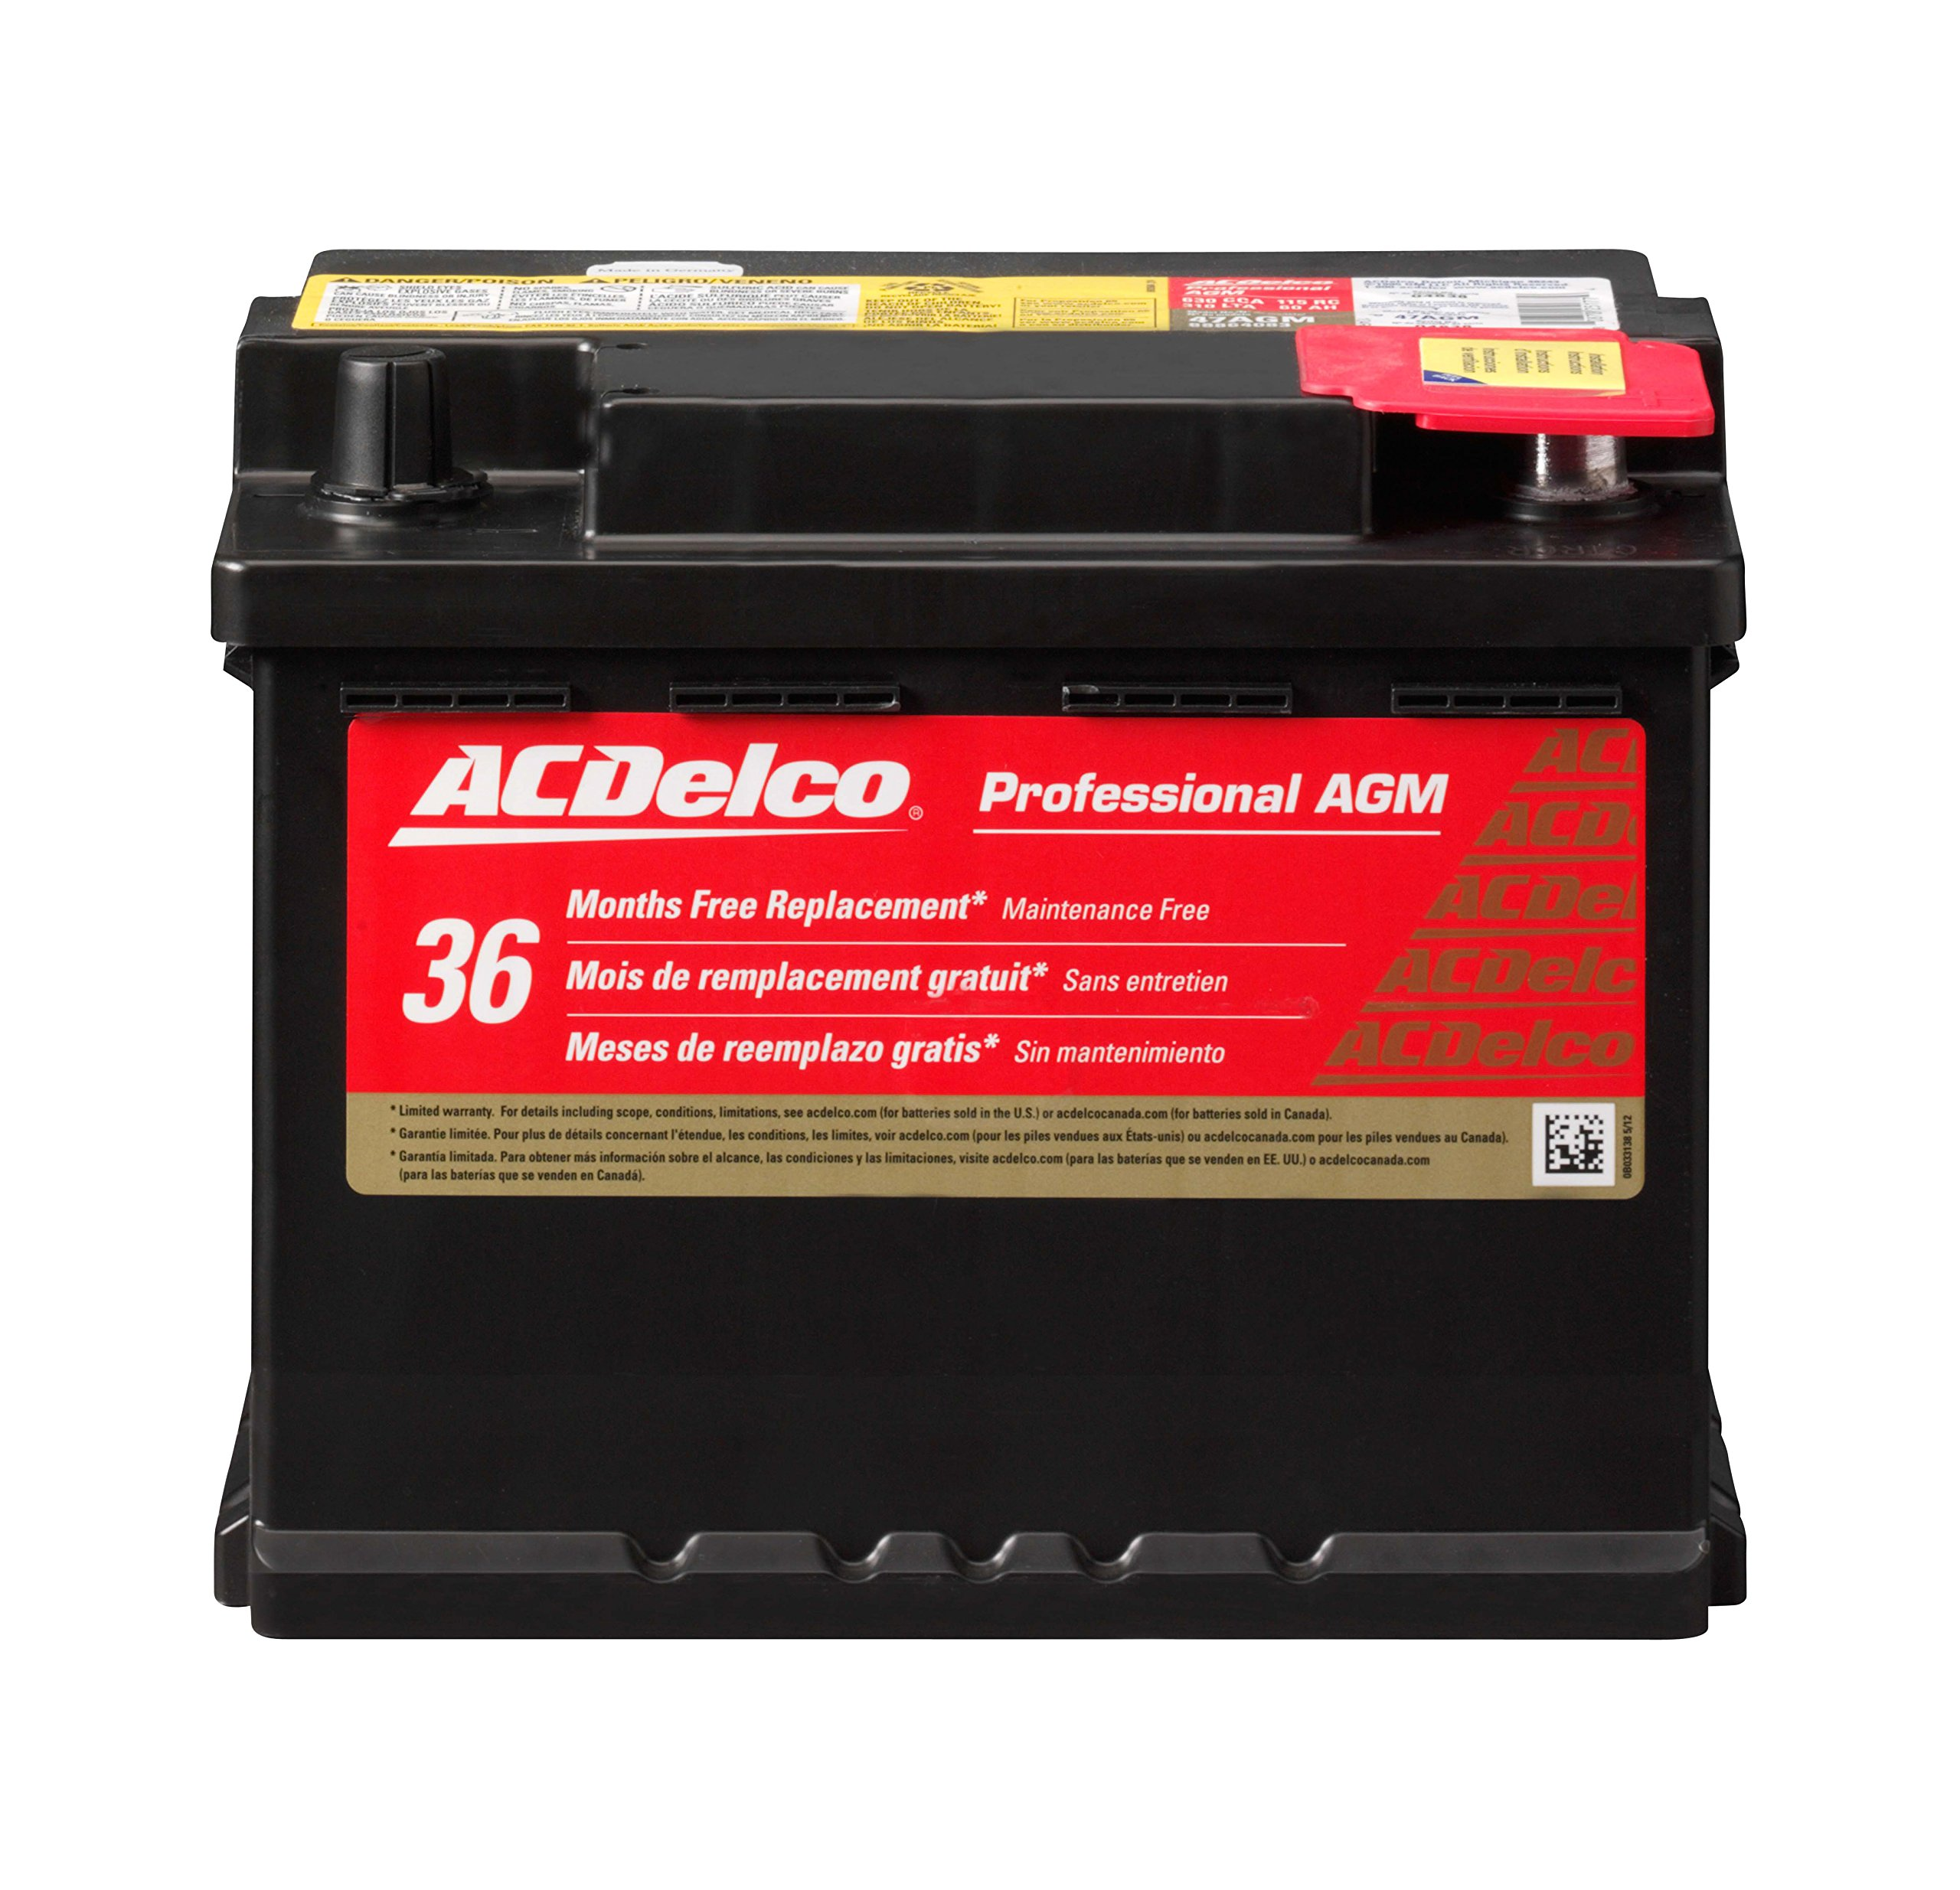 ACDelco 47AGM Professional AGM Automotive BCI Group 47 Battery by ACDelco